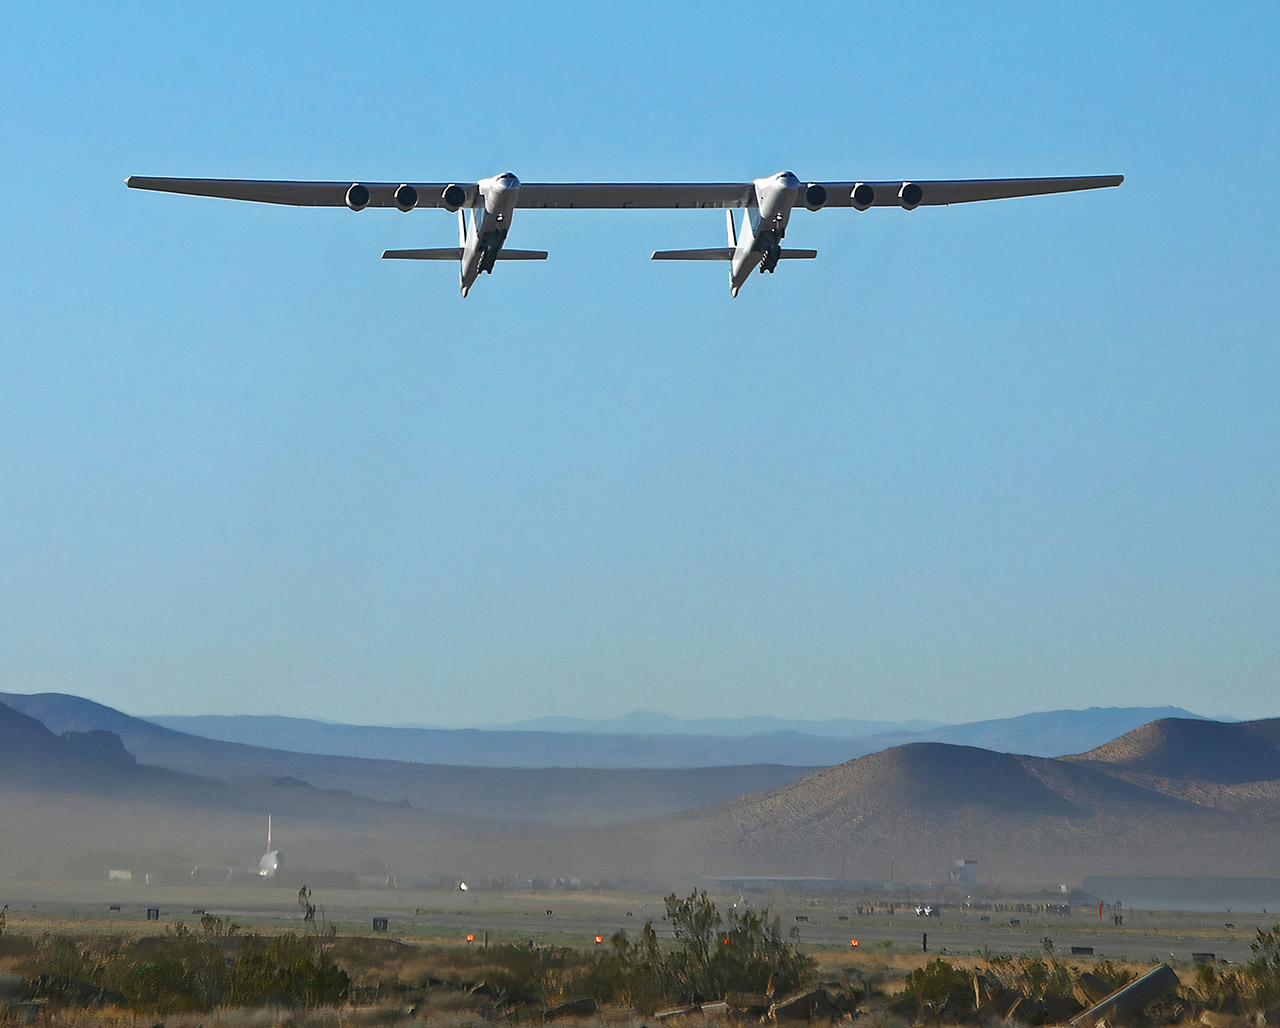 Stratolaunch Largest Widest Aircraft Second Flight